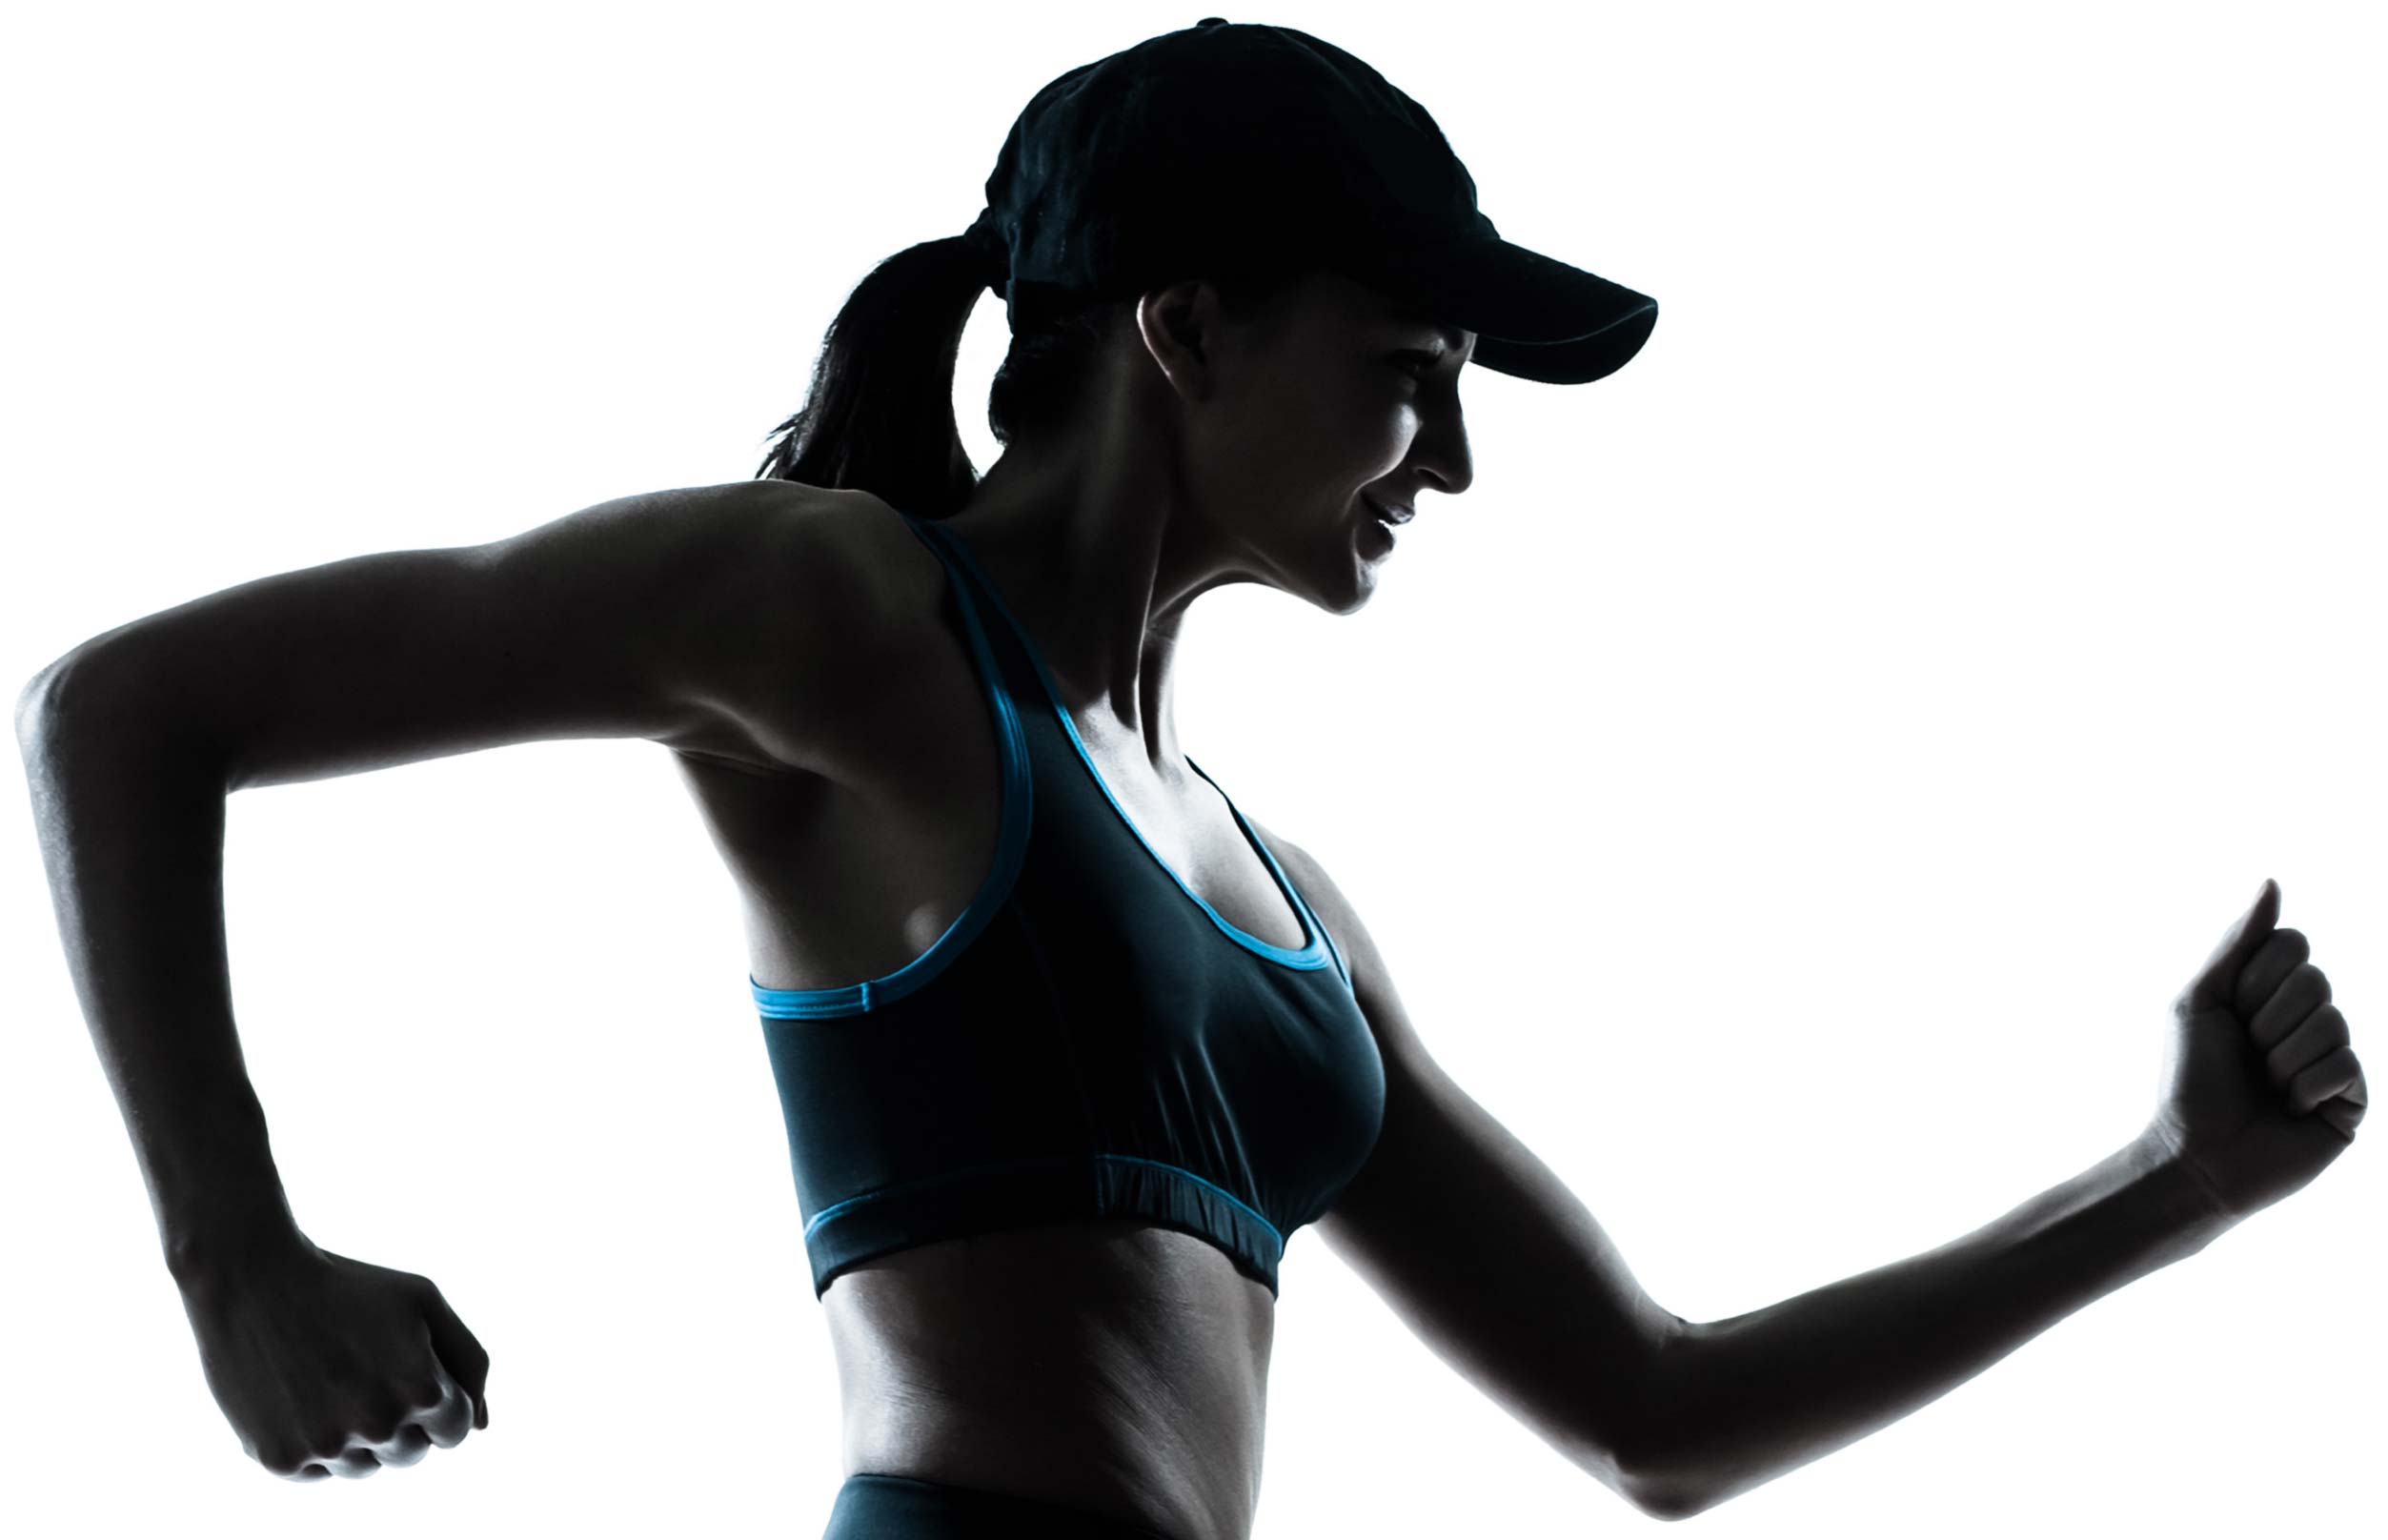 physiotherapy solutions - image of woman exercising